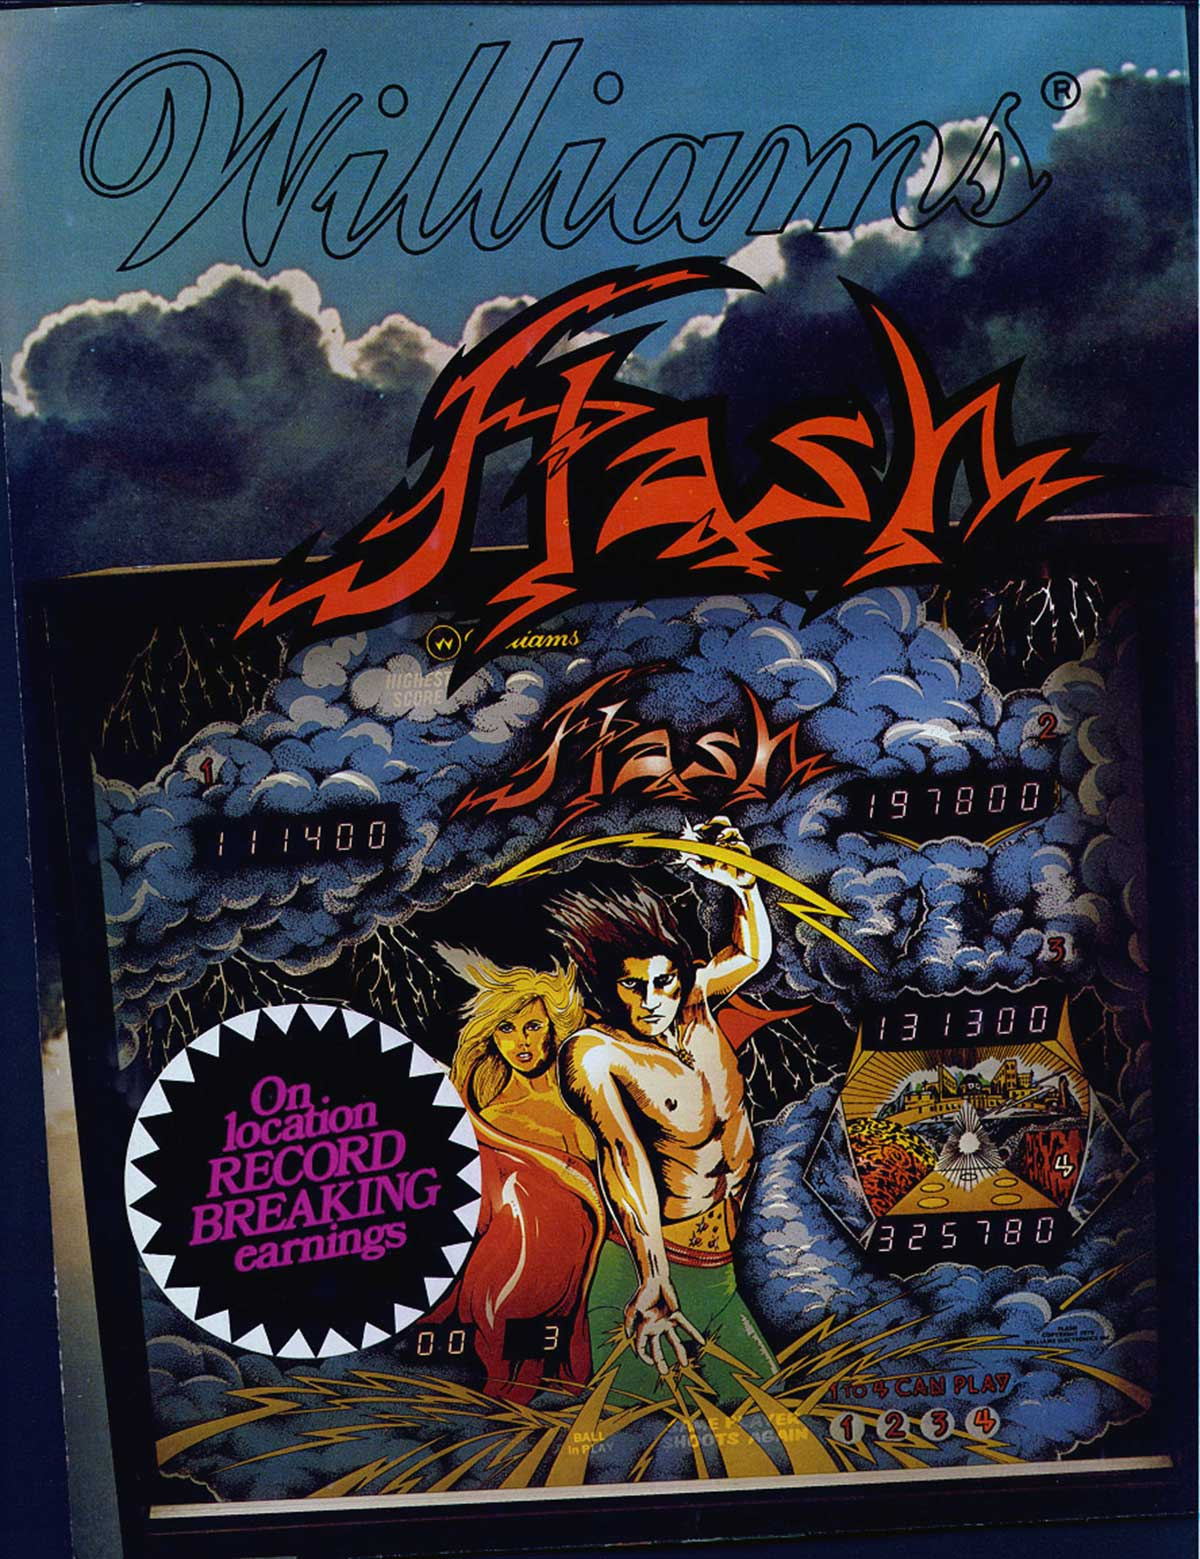 Flash_flyer3.jpg